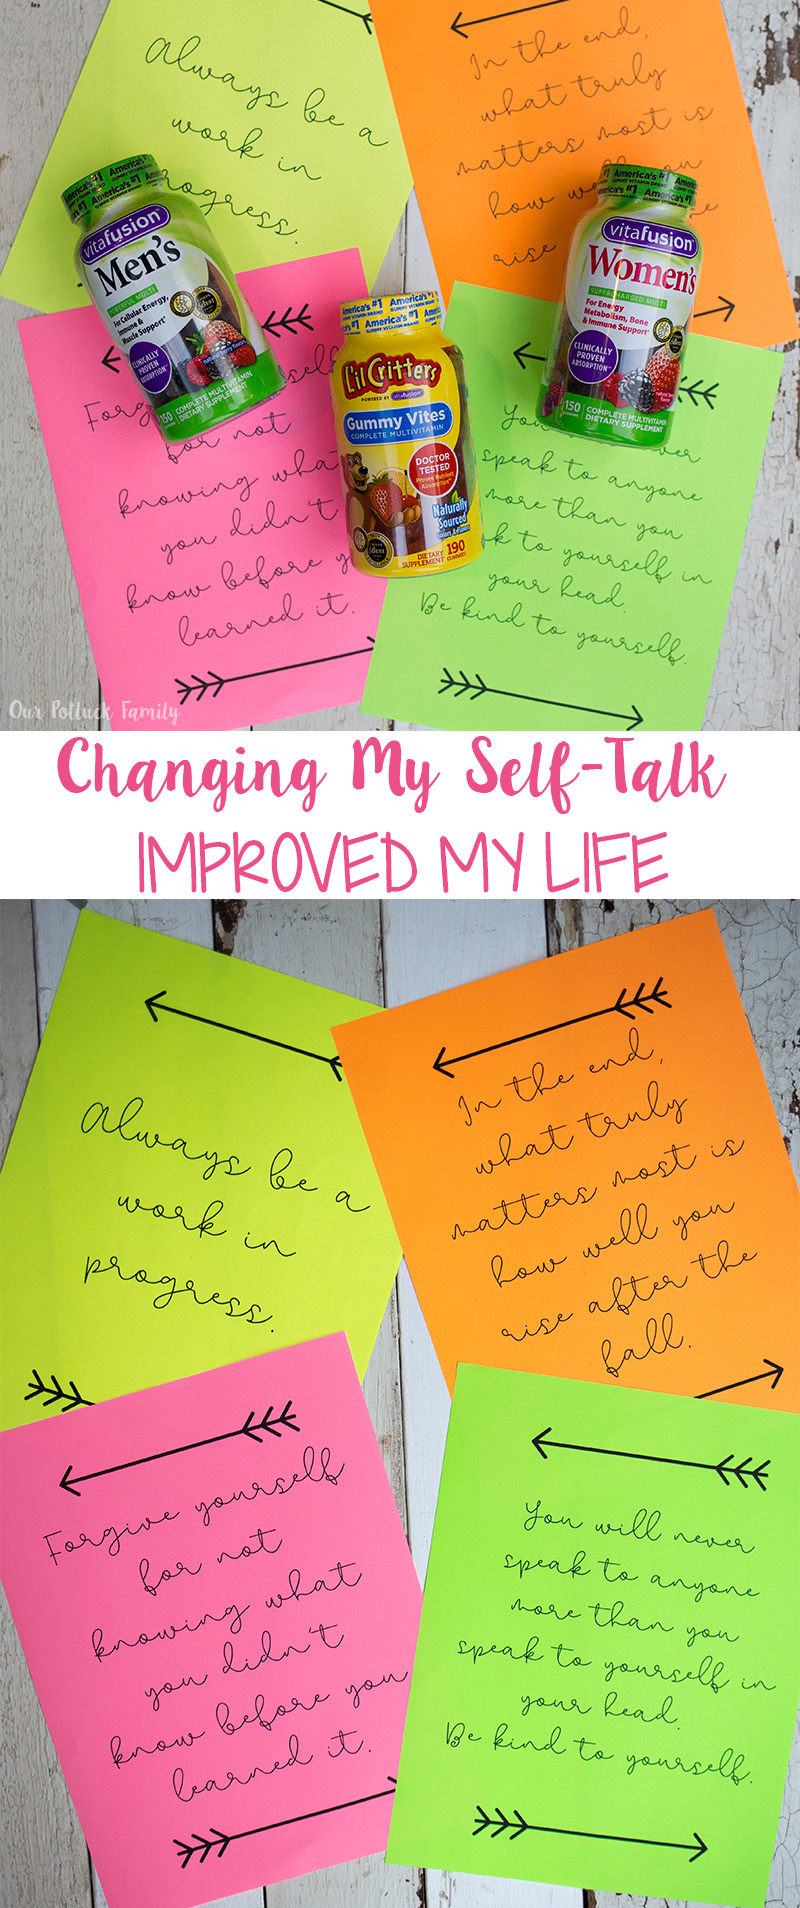 Changing my self-talk changed my life